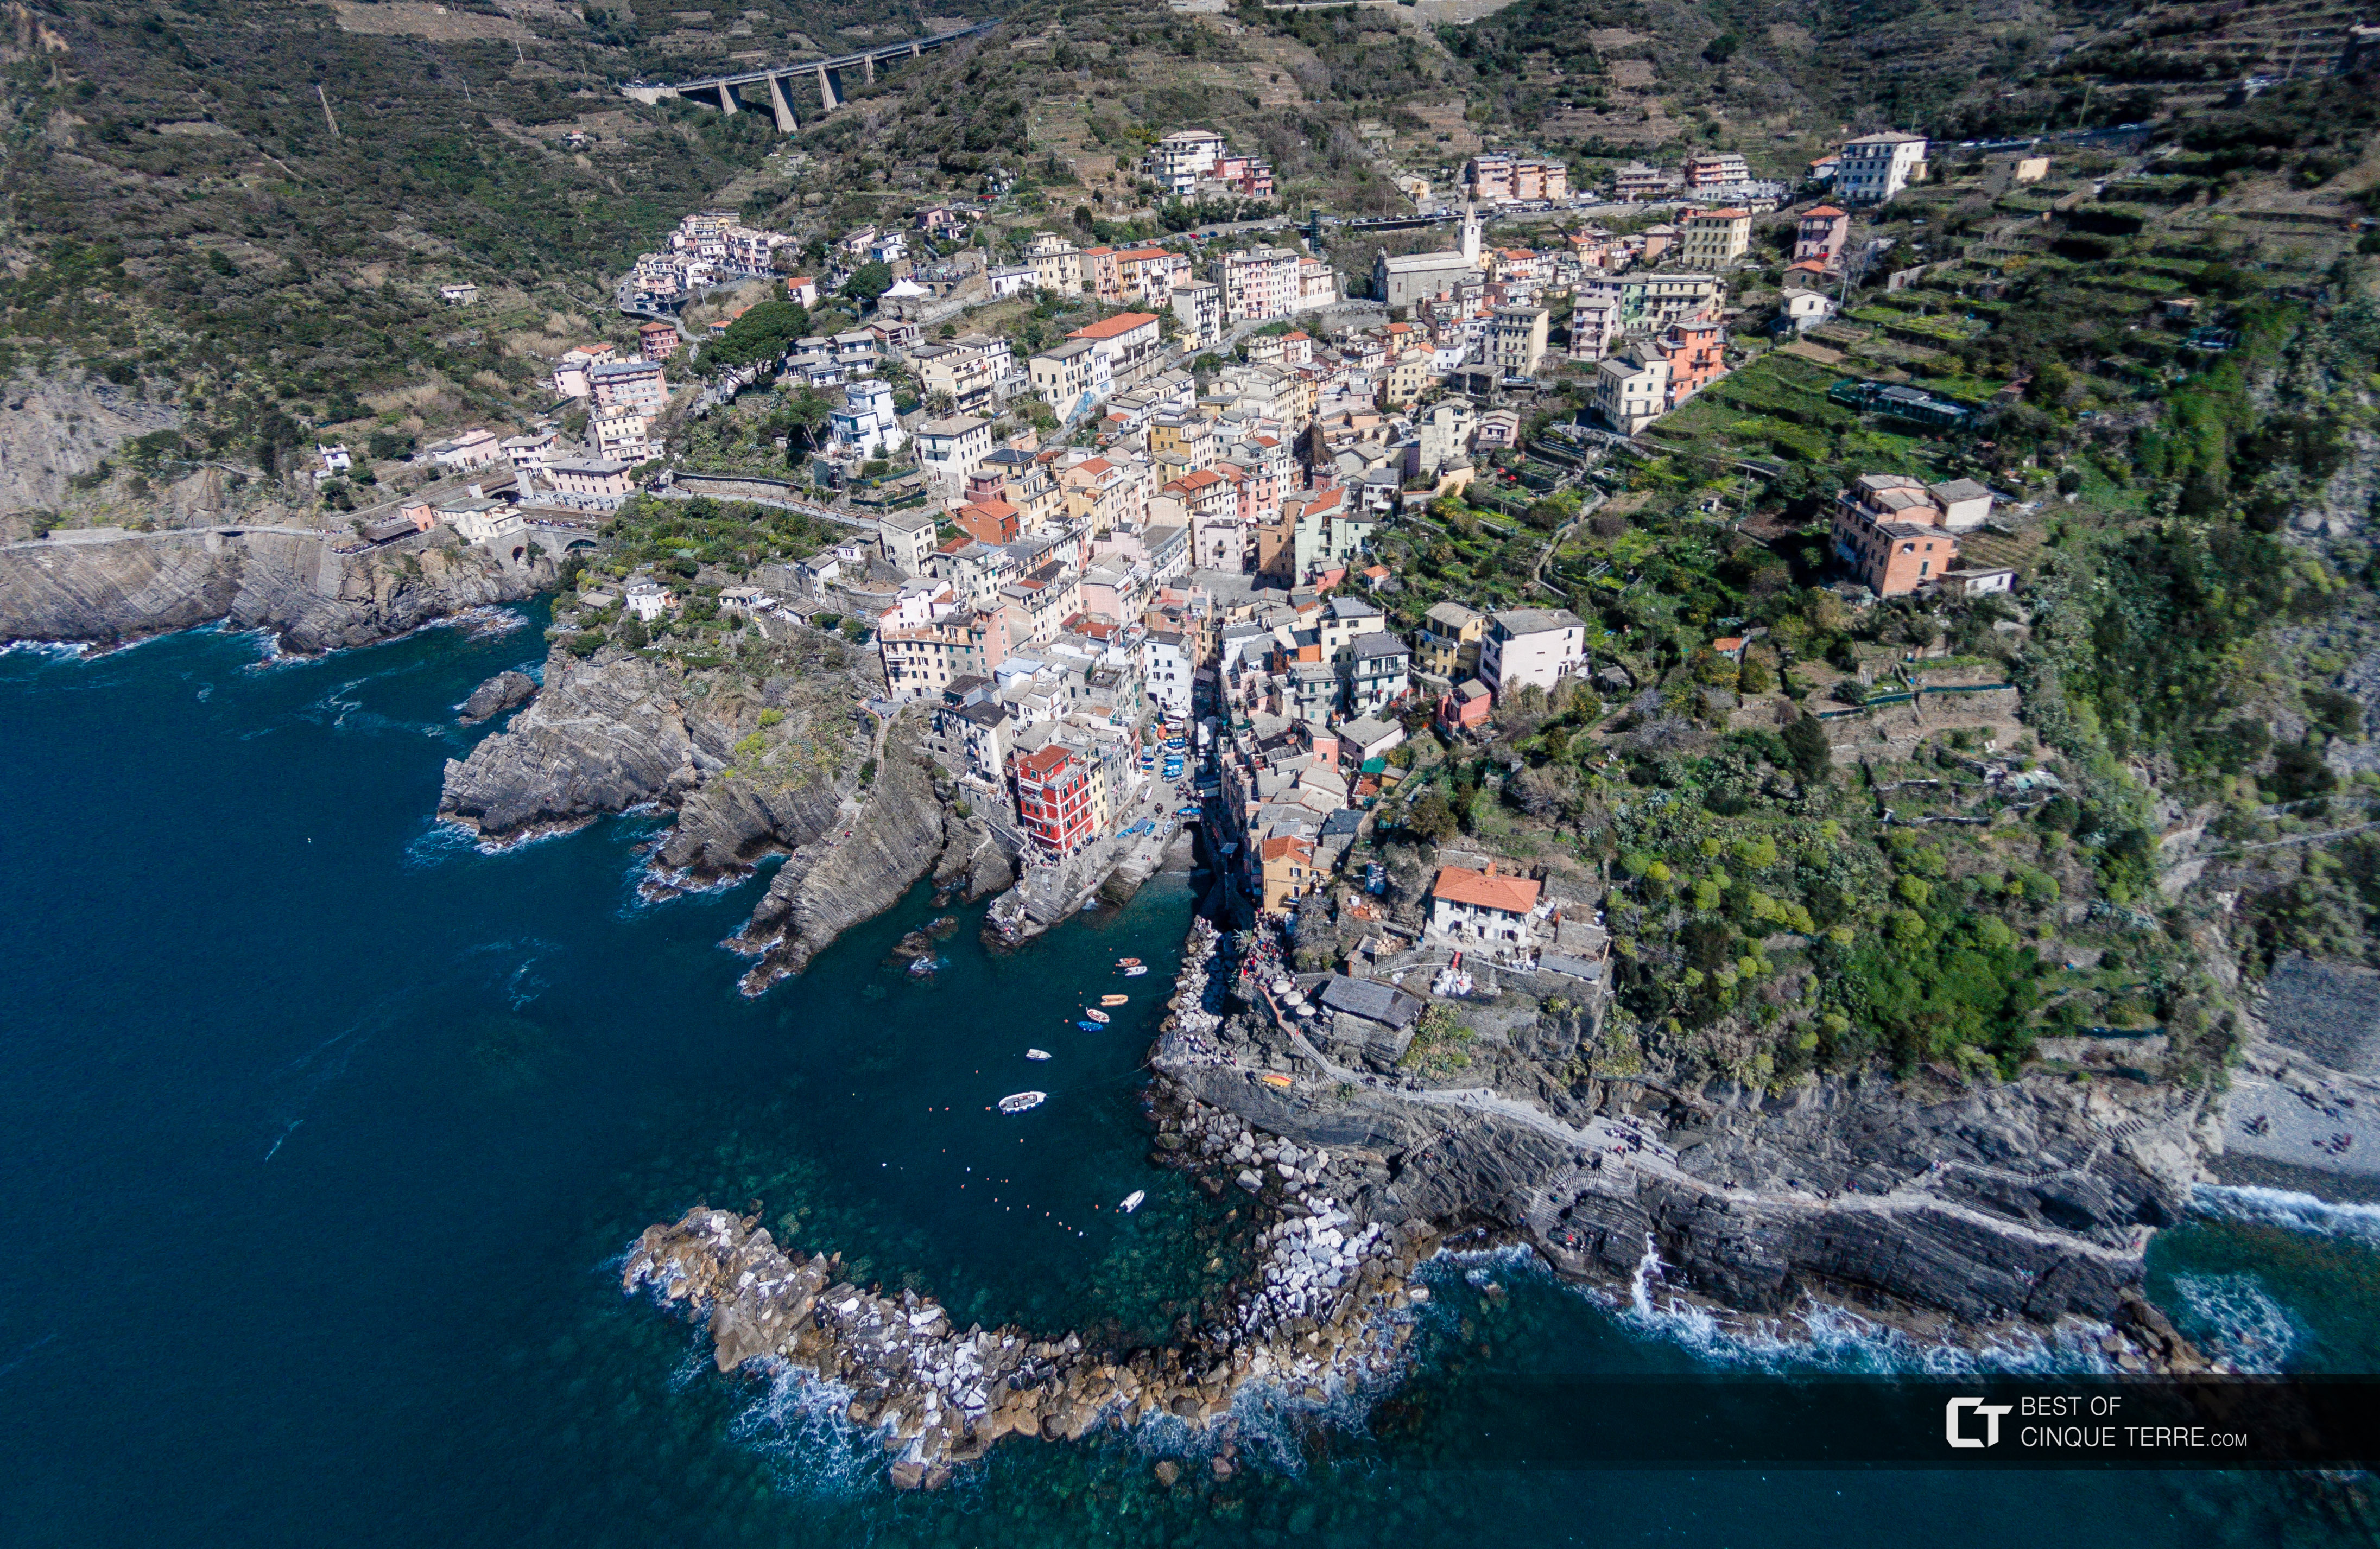 Aerial view of the village, Riomaggiore, Cinque Terre, Italy